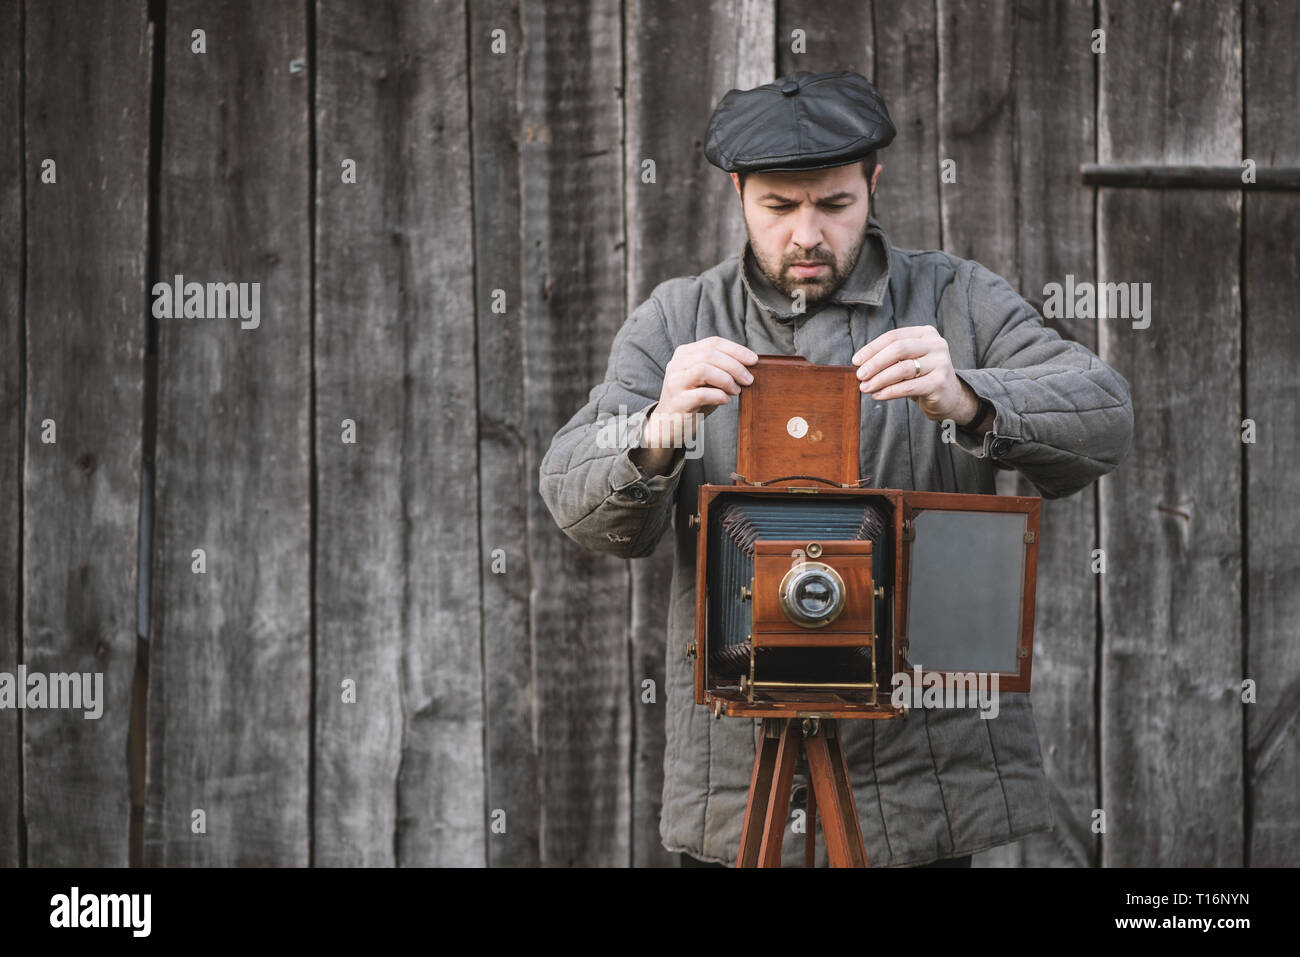 Photographer prepares for shooting and inserts film holder into retro large format camera. Concept - photography of the 1930s-1950s. - Stock Image